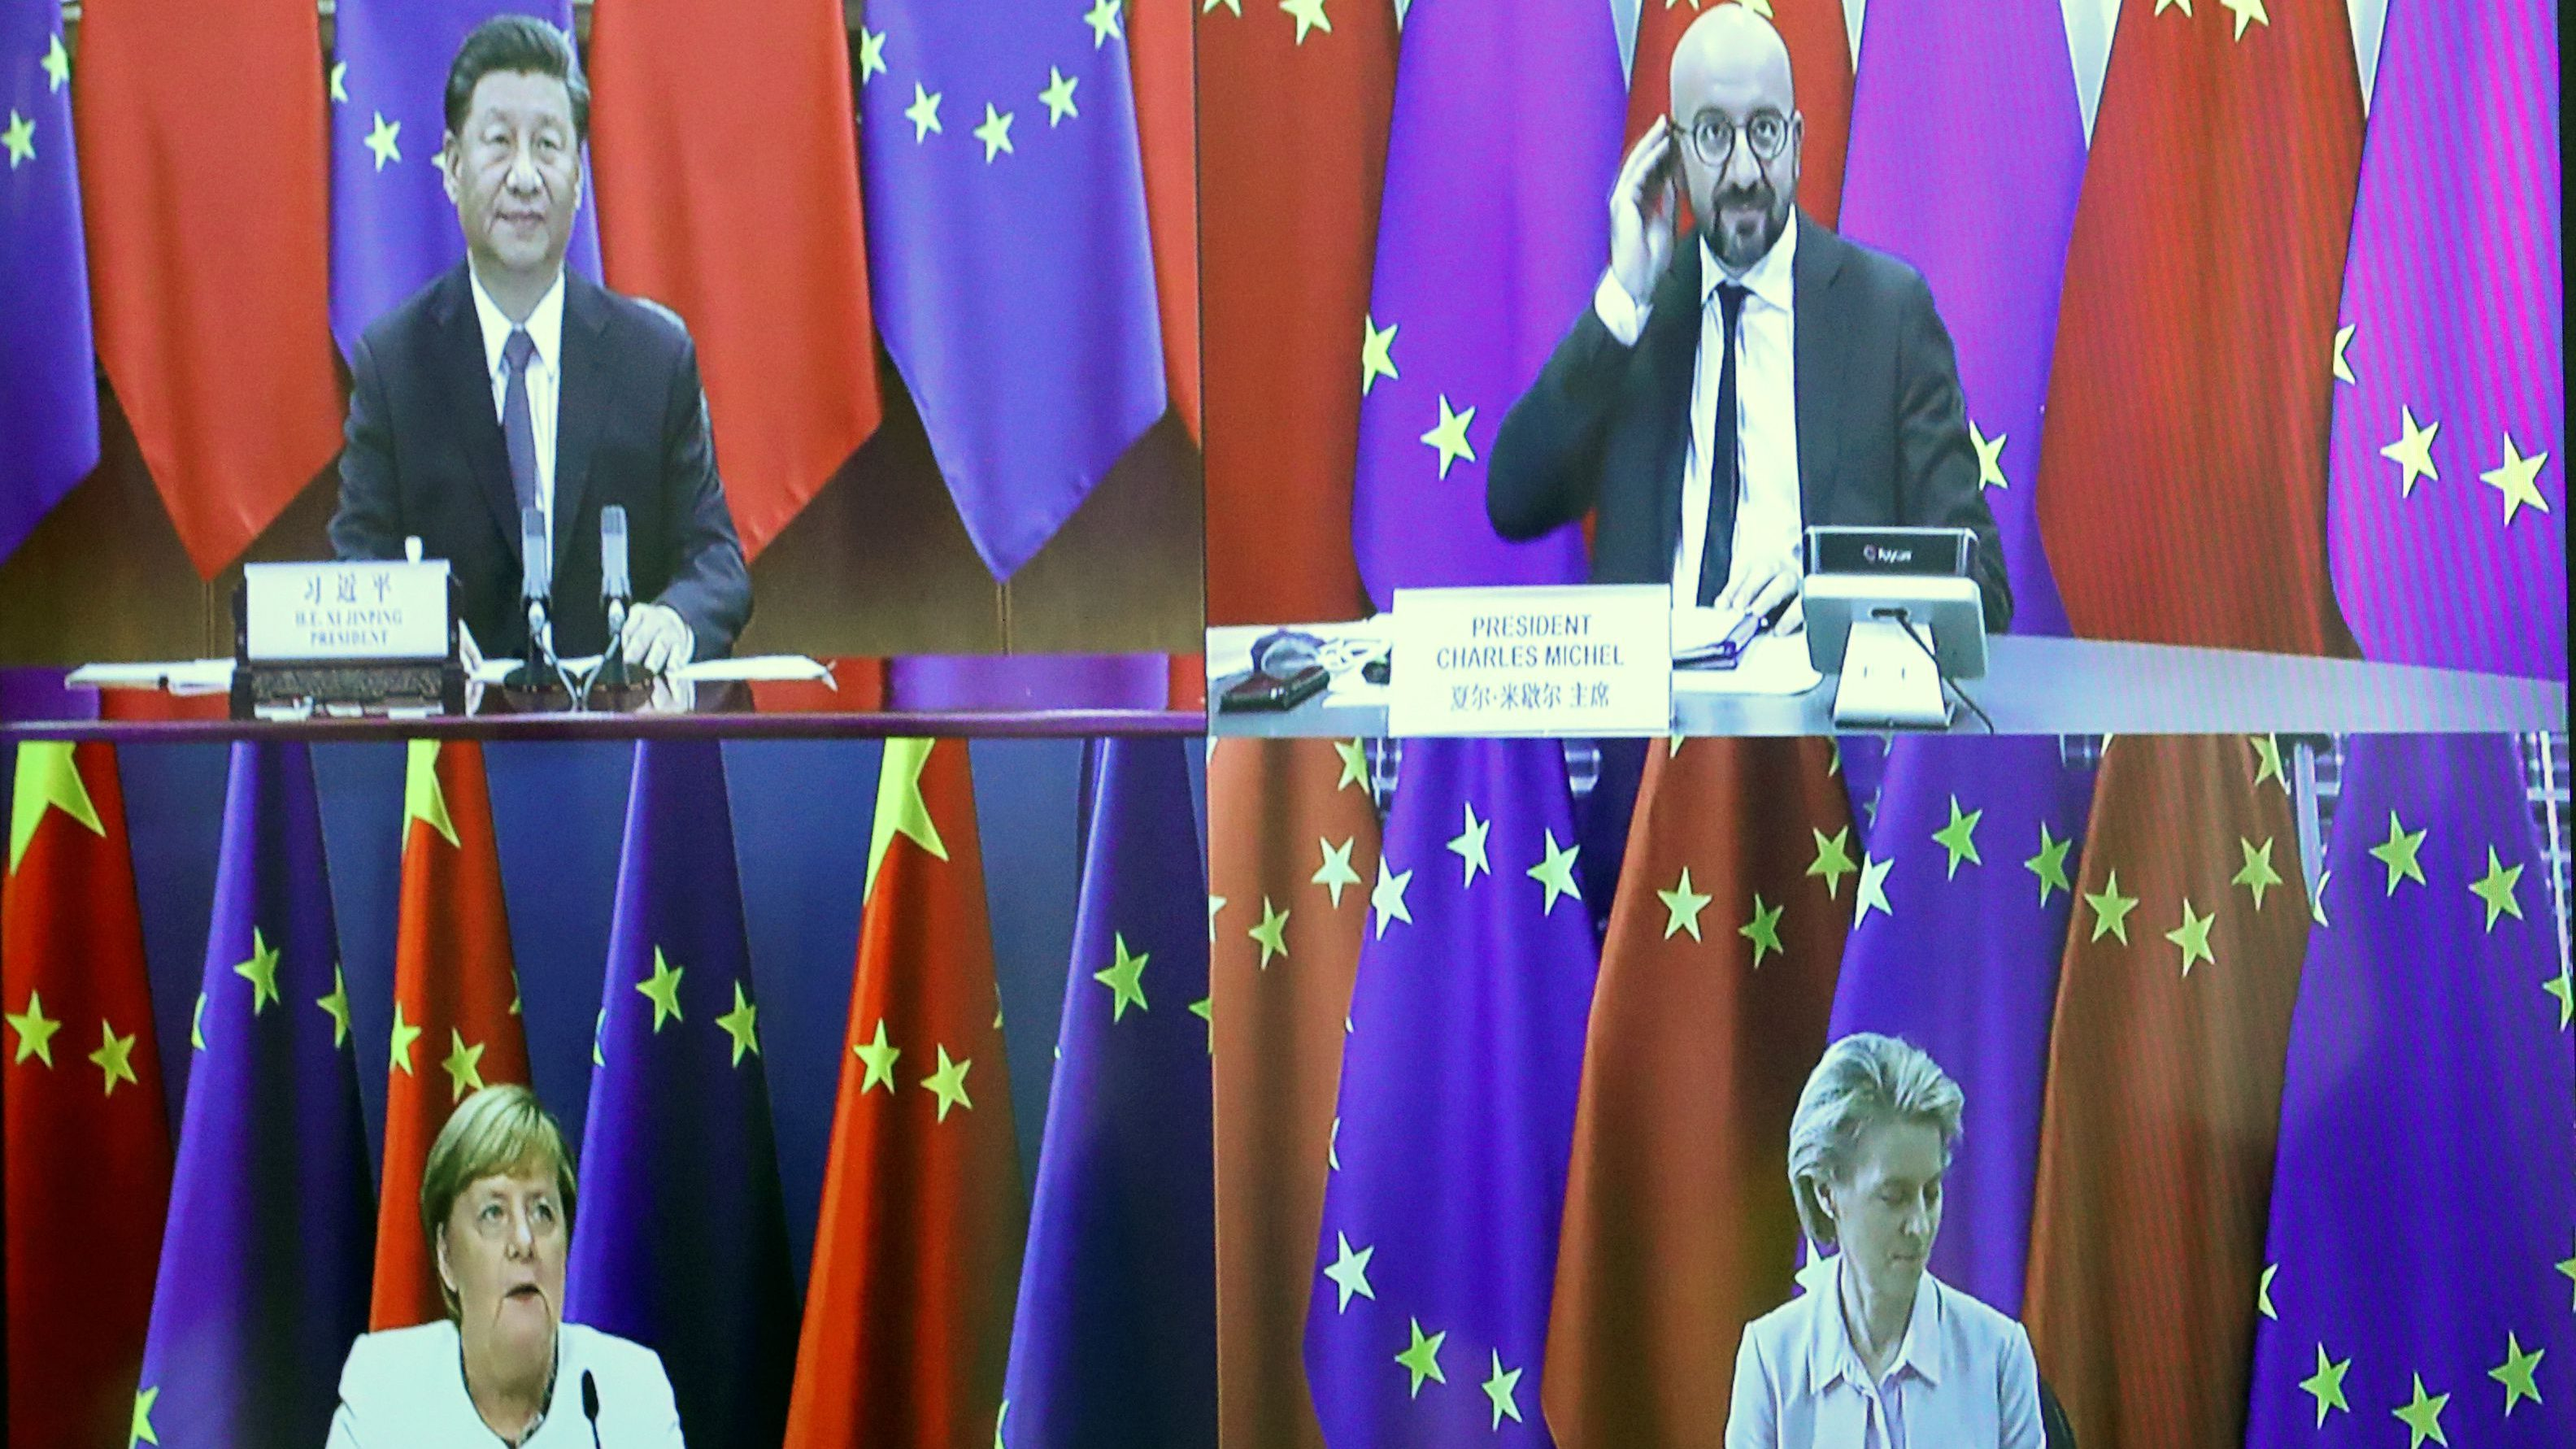 A screen shows XI Jinping, Charles Michel, Ursula Von der Leyen, and Angela Merkel.